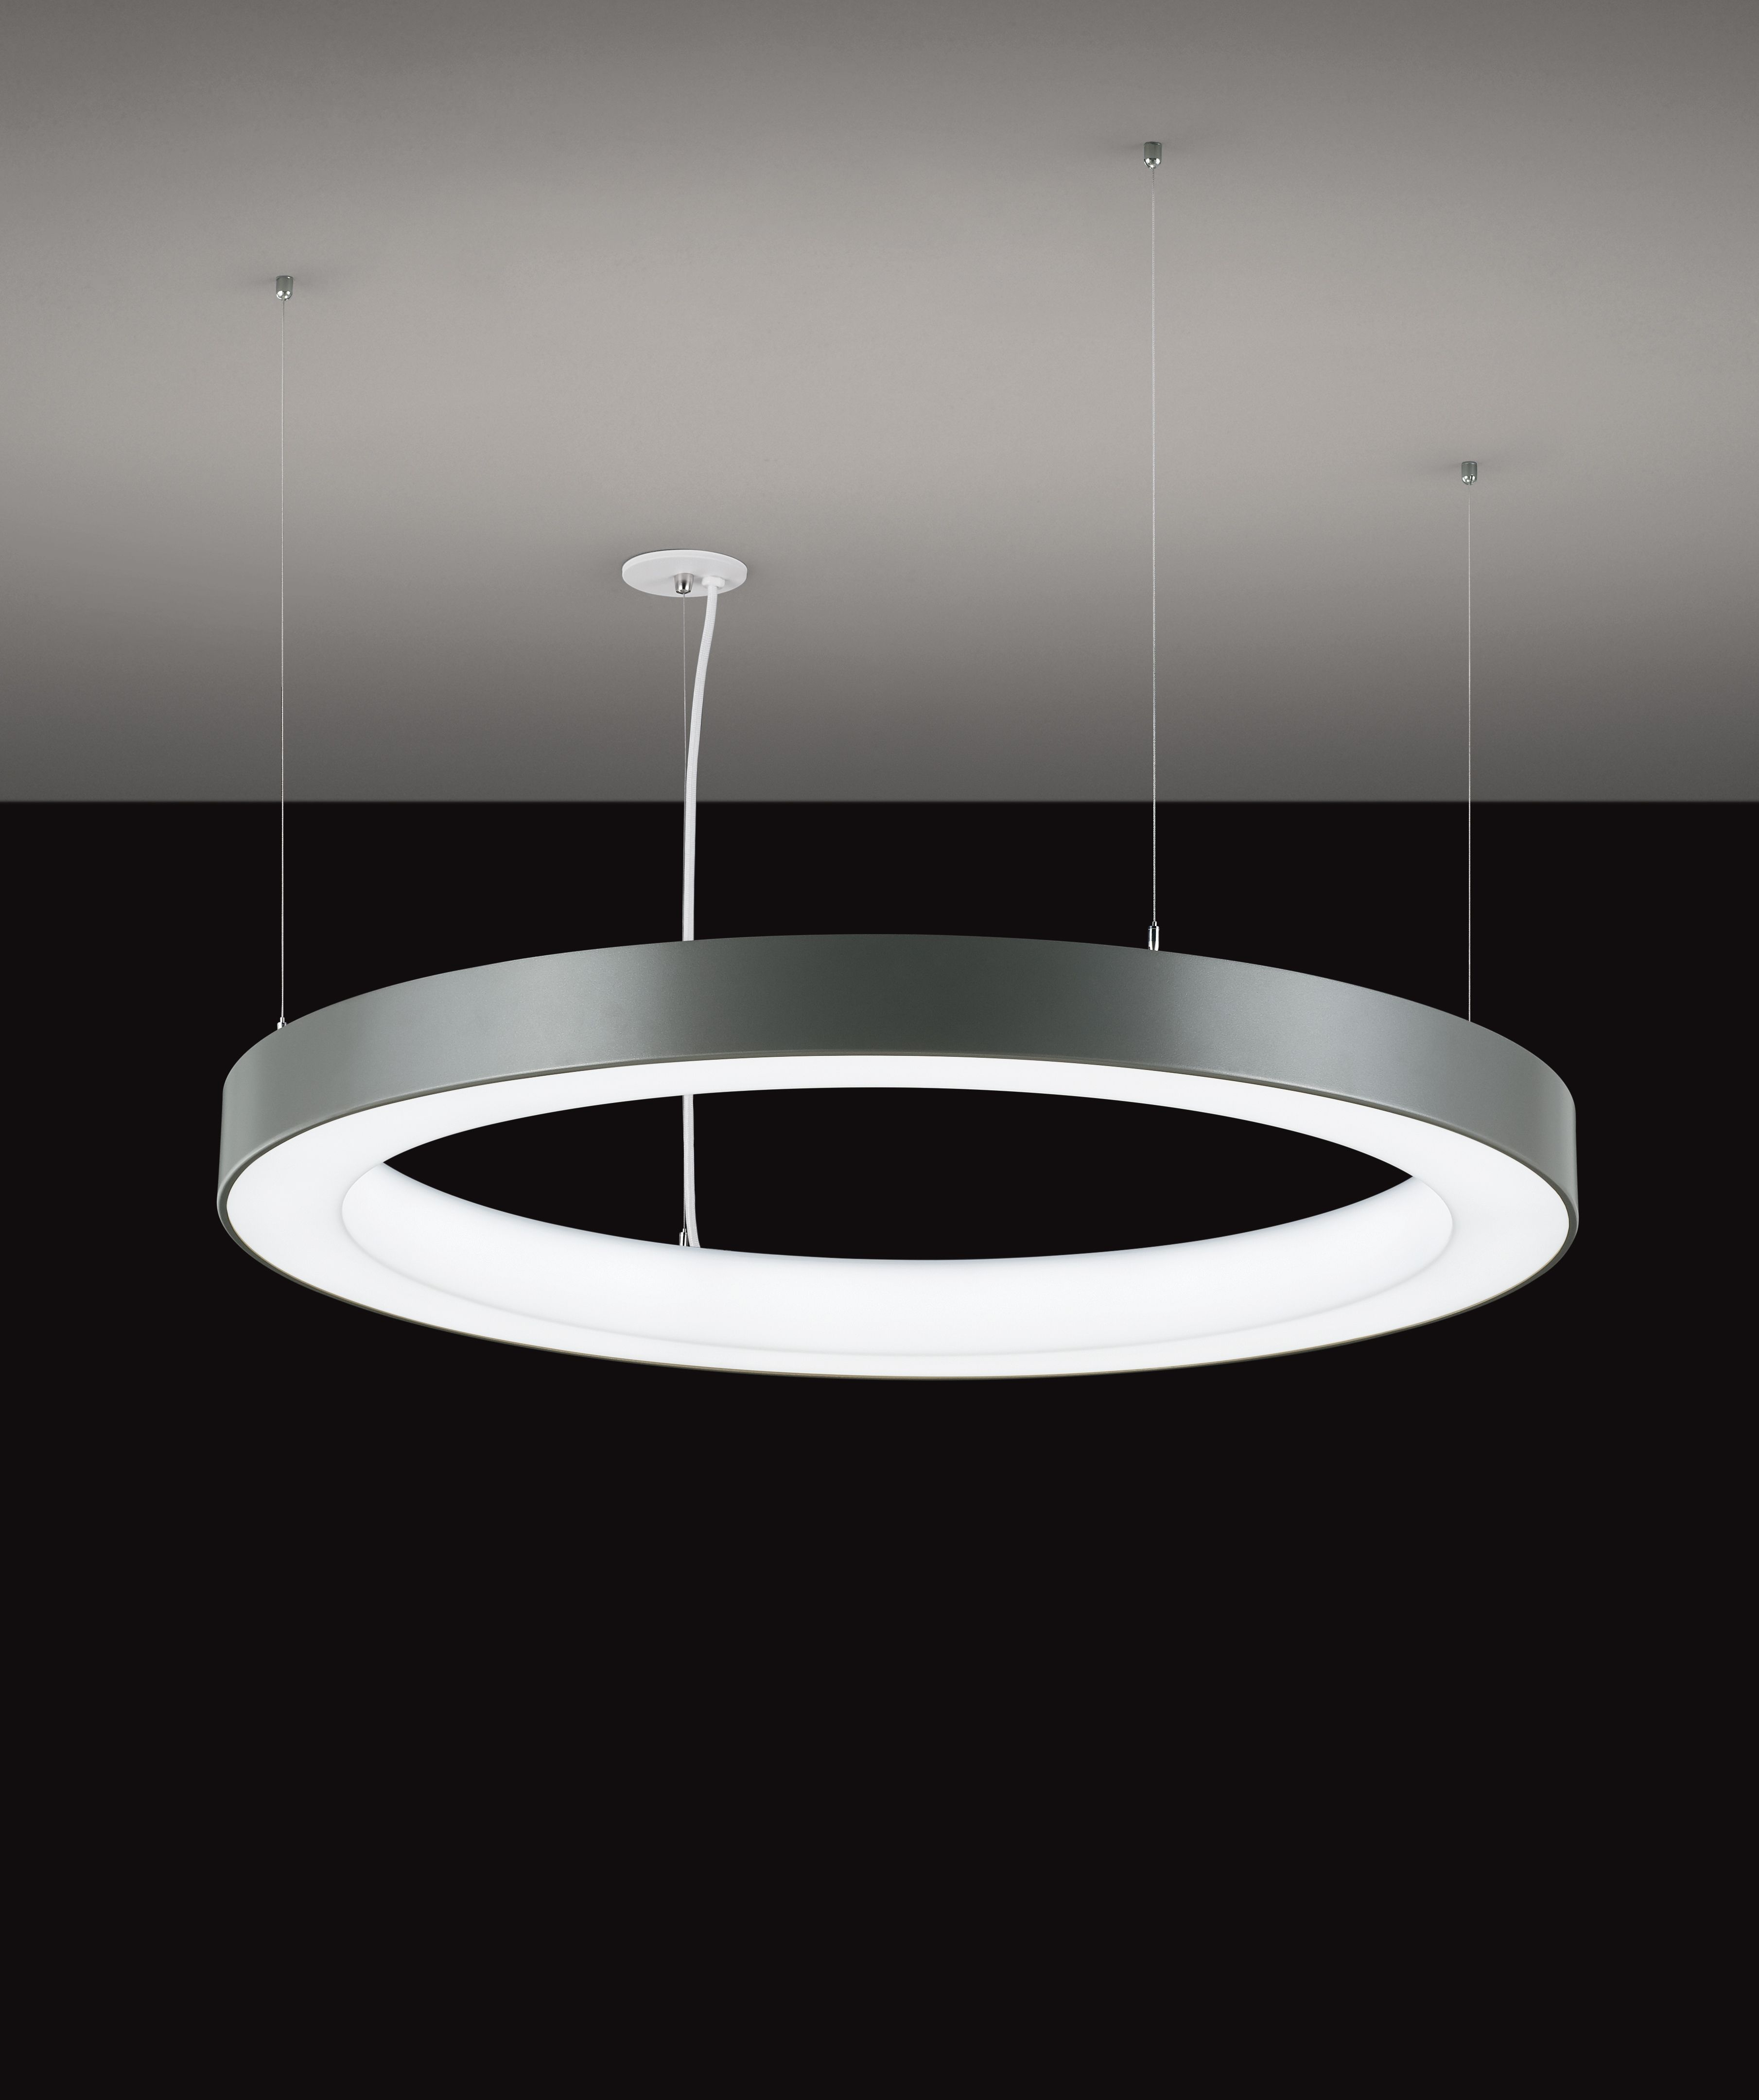 Glowring Pendant Ocl Architectural Lighting Light